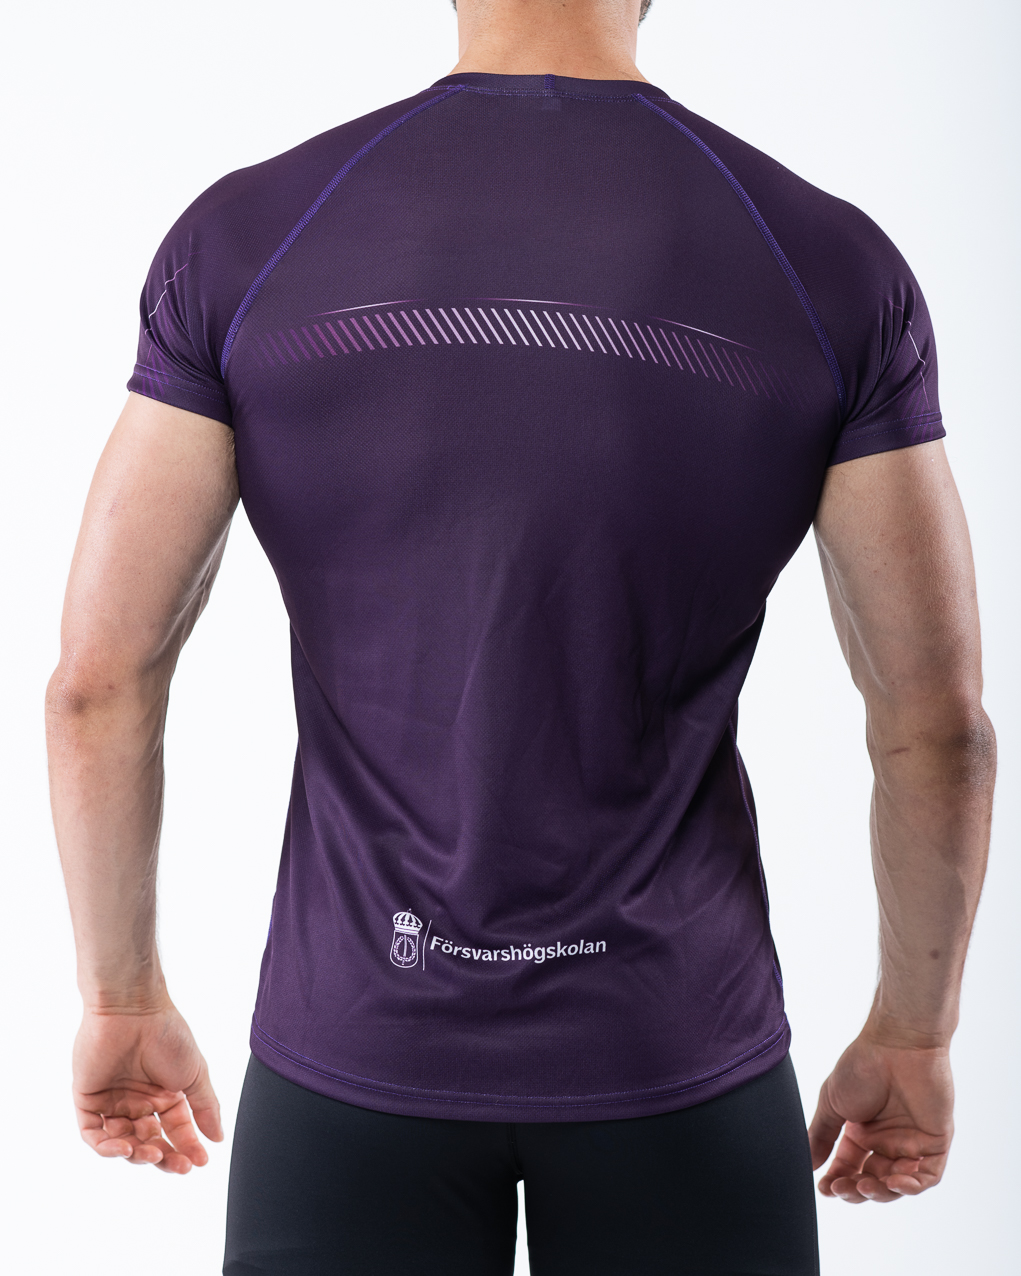 Men's t-shirt, purple, back